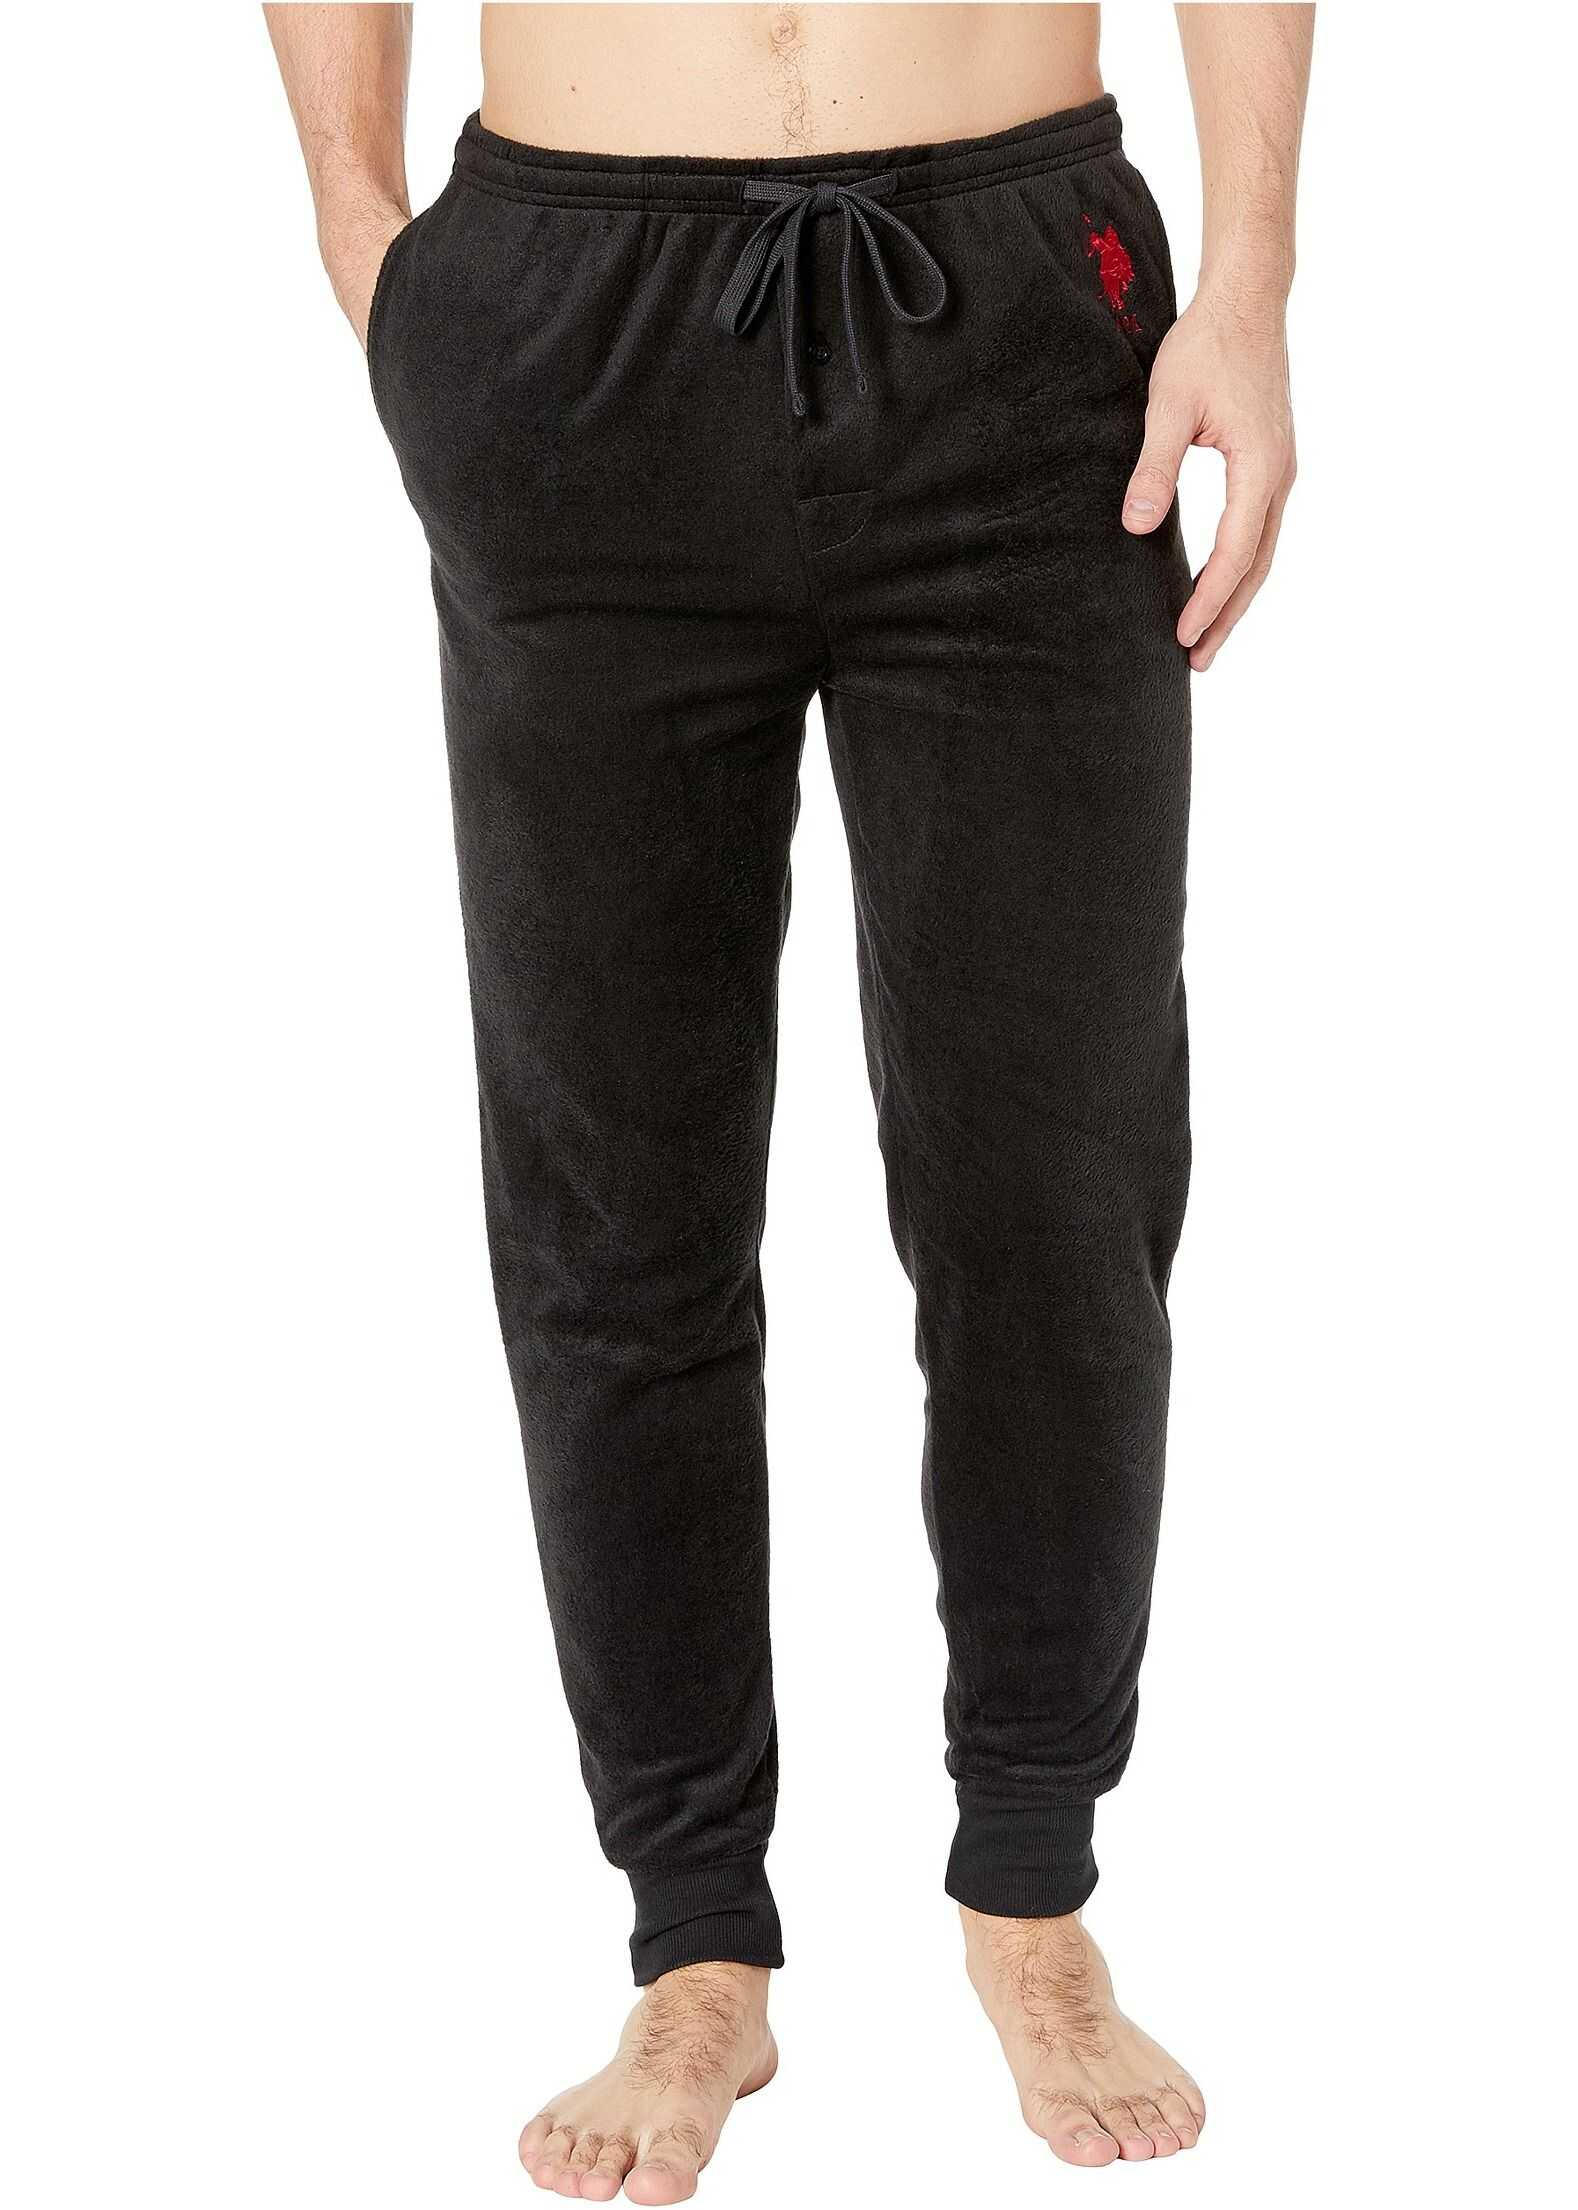 U.S. POLO ASSN. Silky Fleece Jogger Black